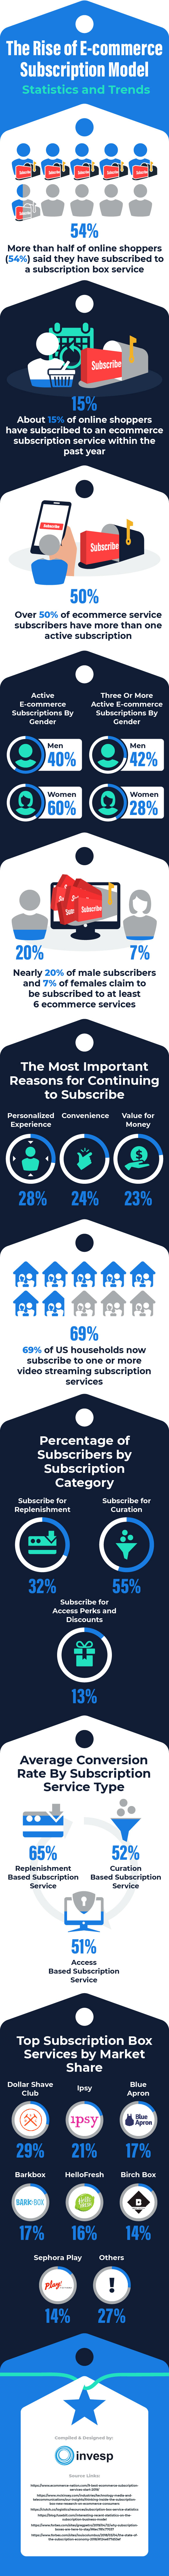 The Rise of E-commerce Subscription Model – Statistics and Trends